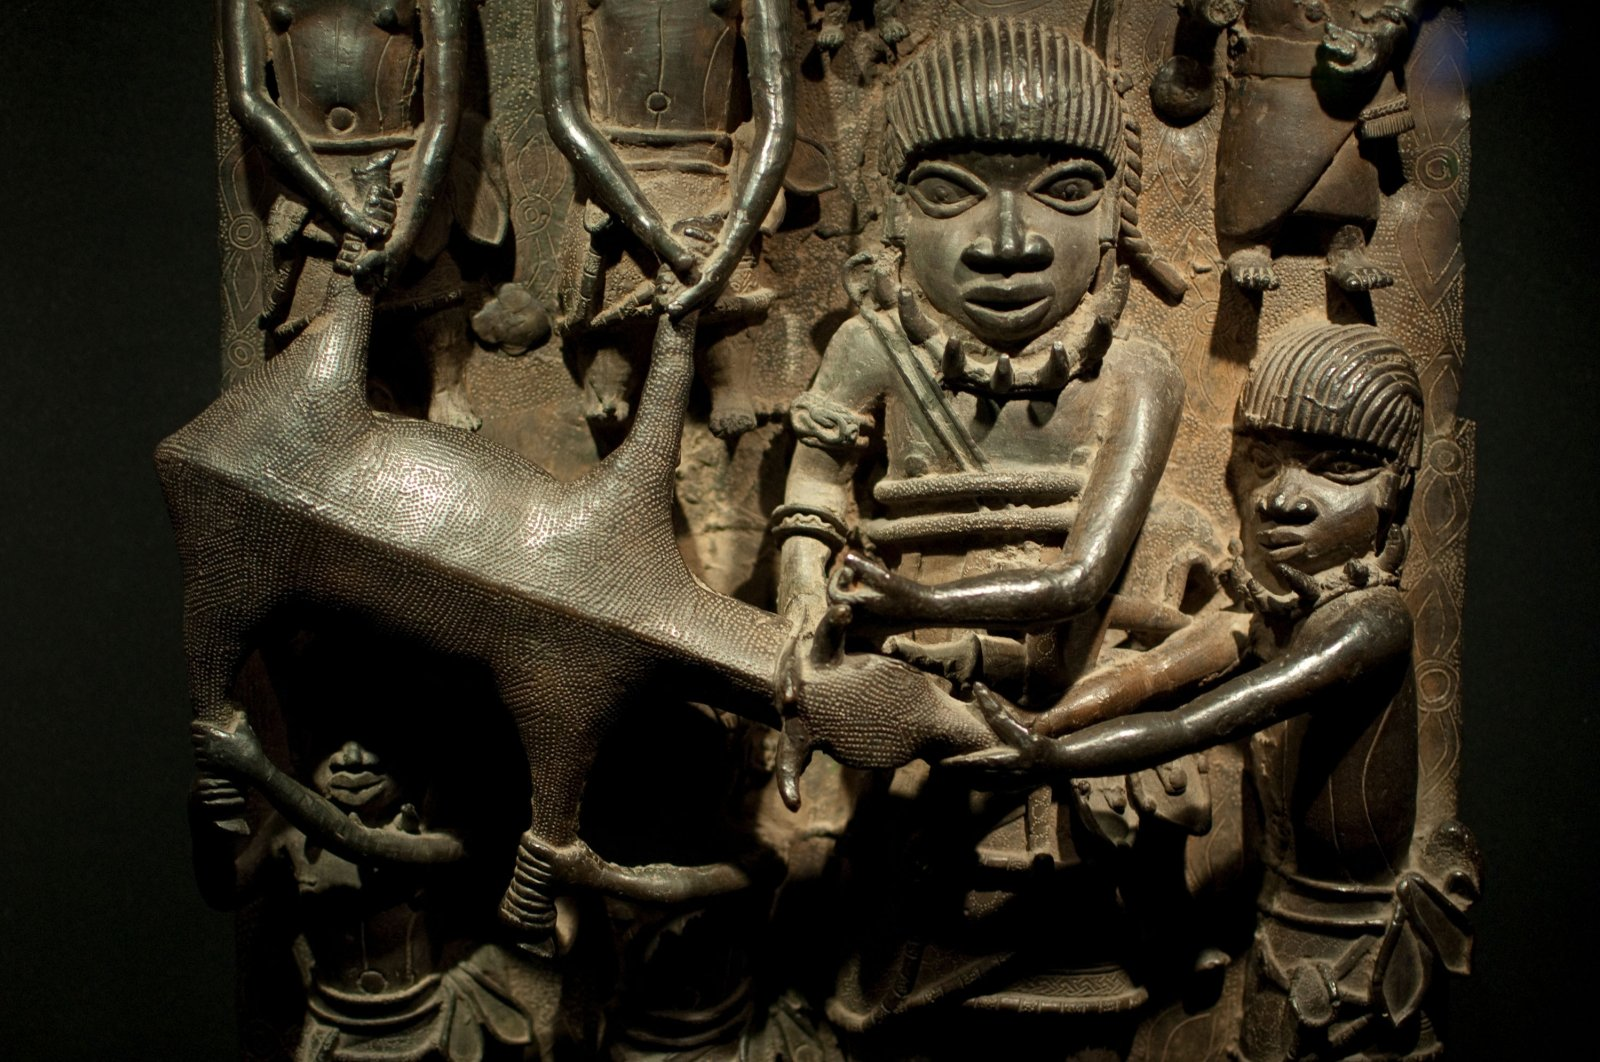 Brass plaques that show the oba (king) with other people of Benin, aprox. 1600-1500 B.C., Madrid, Spain, Jan. 16, 2010. (Shutterstock Photo)